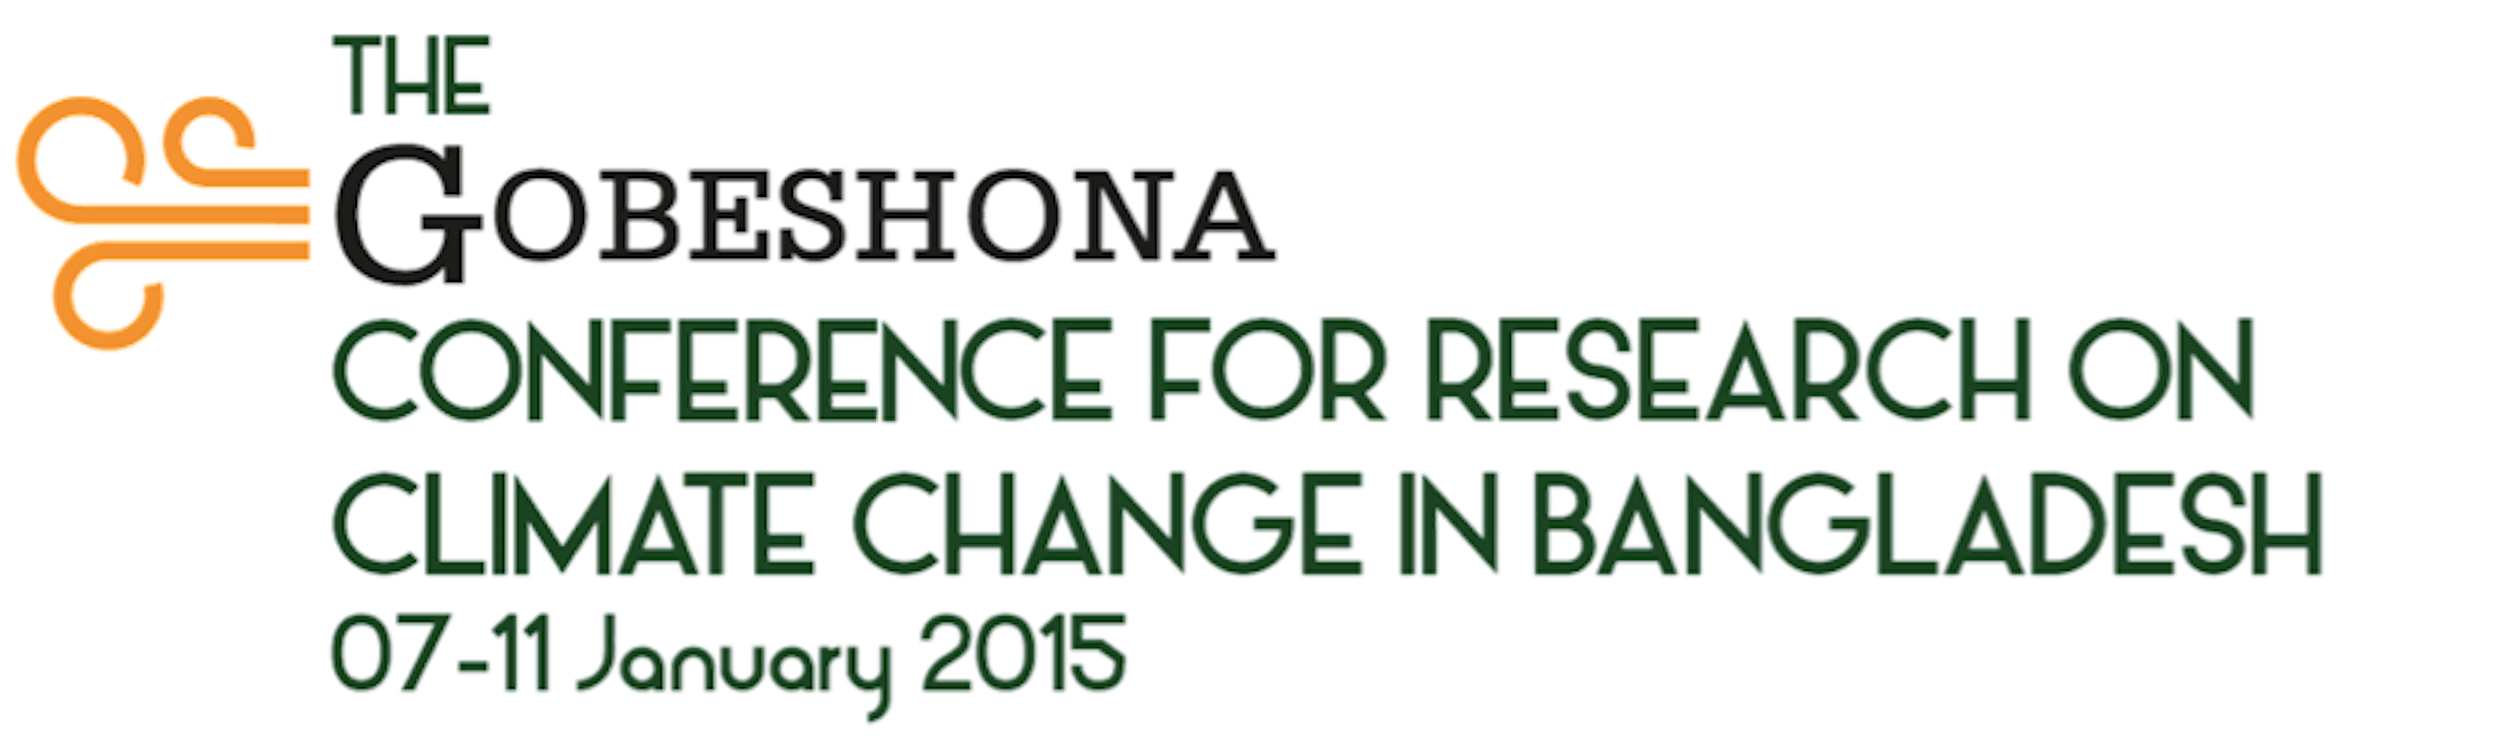 Gobeshona Conference Logo Large_AMENDED